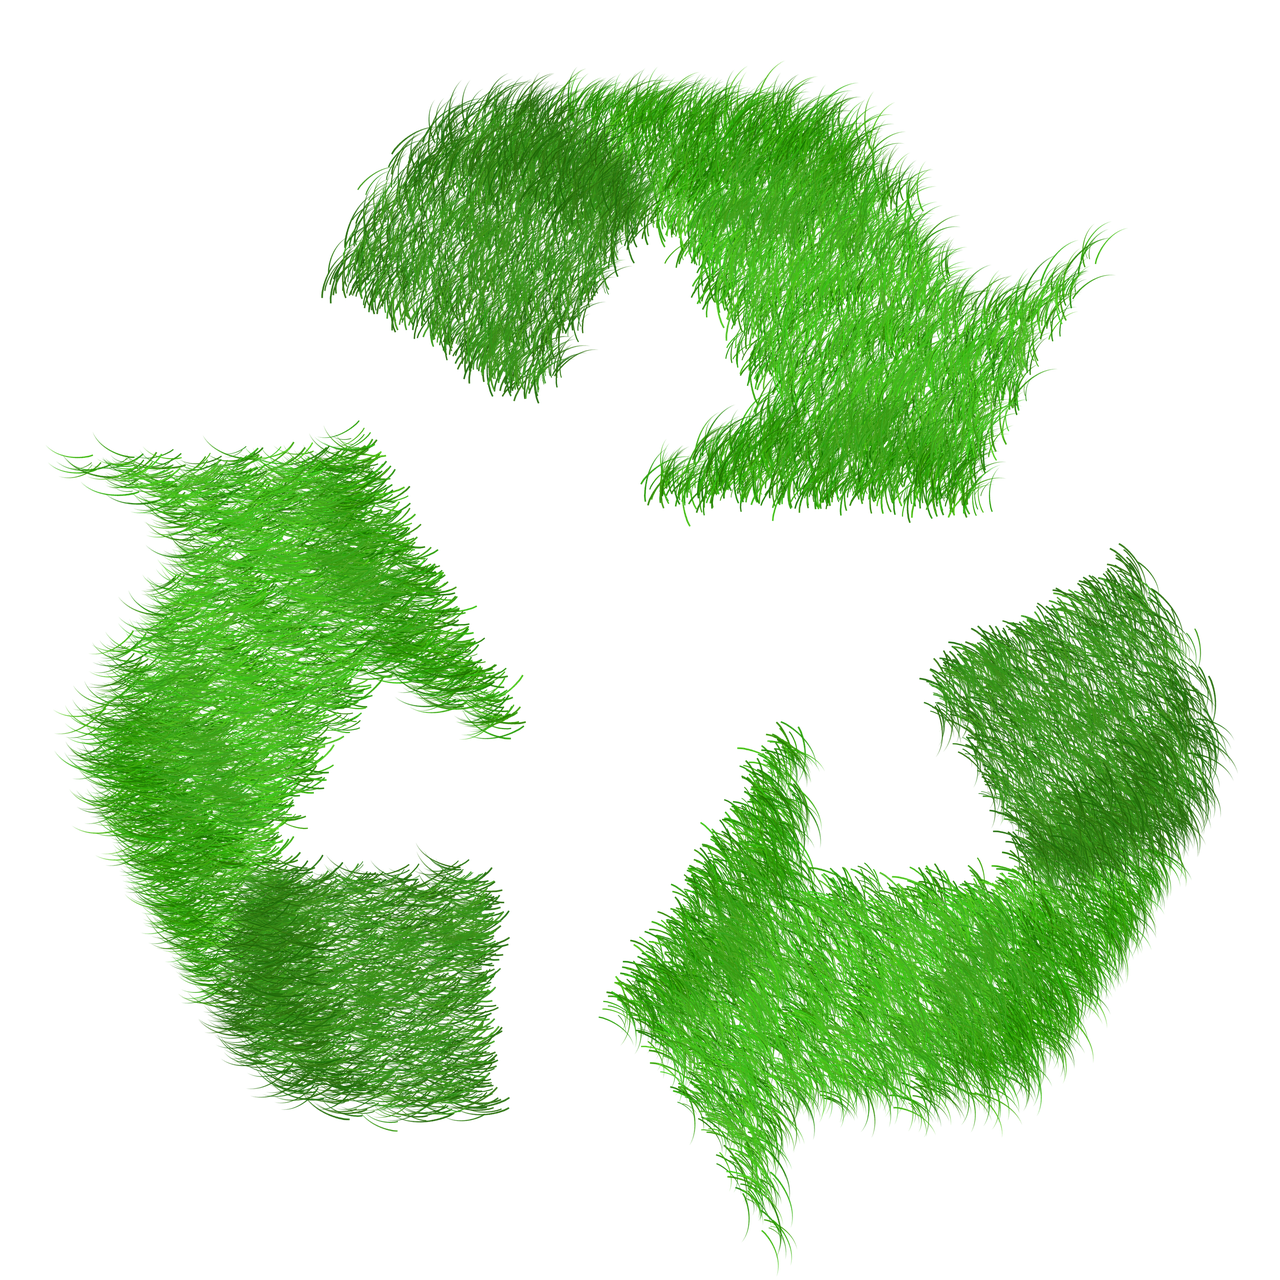 Lusk rubbish removal and waste disposal